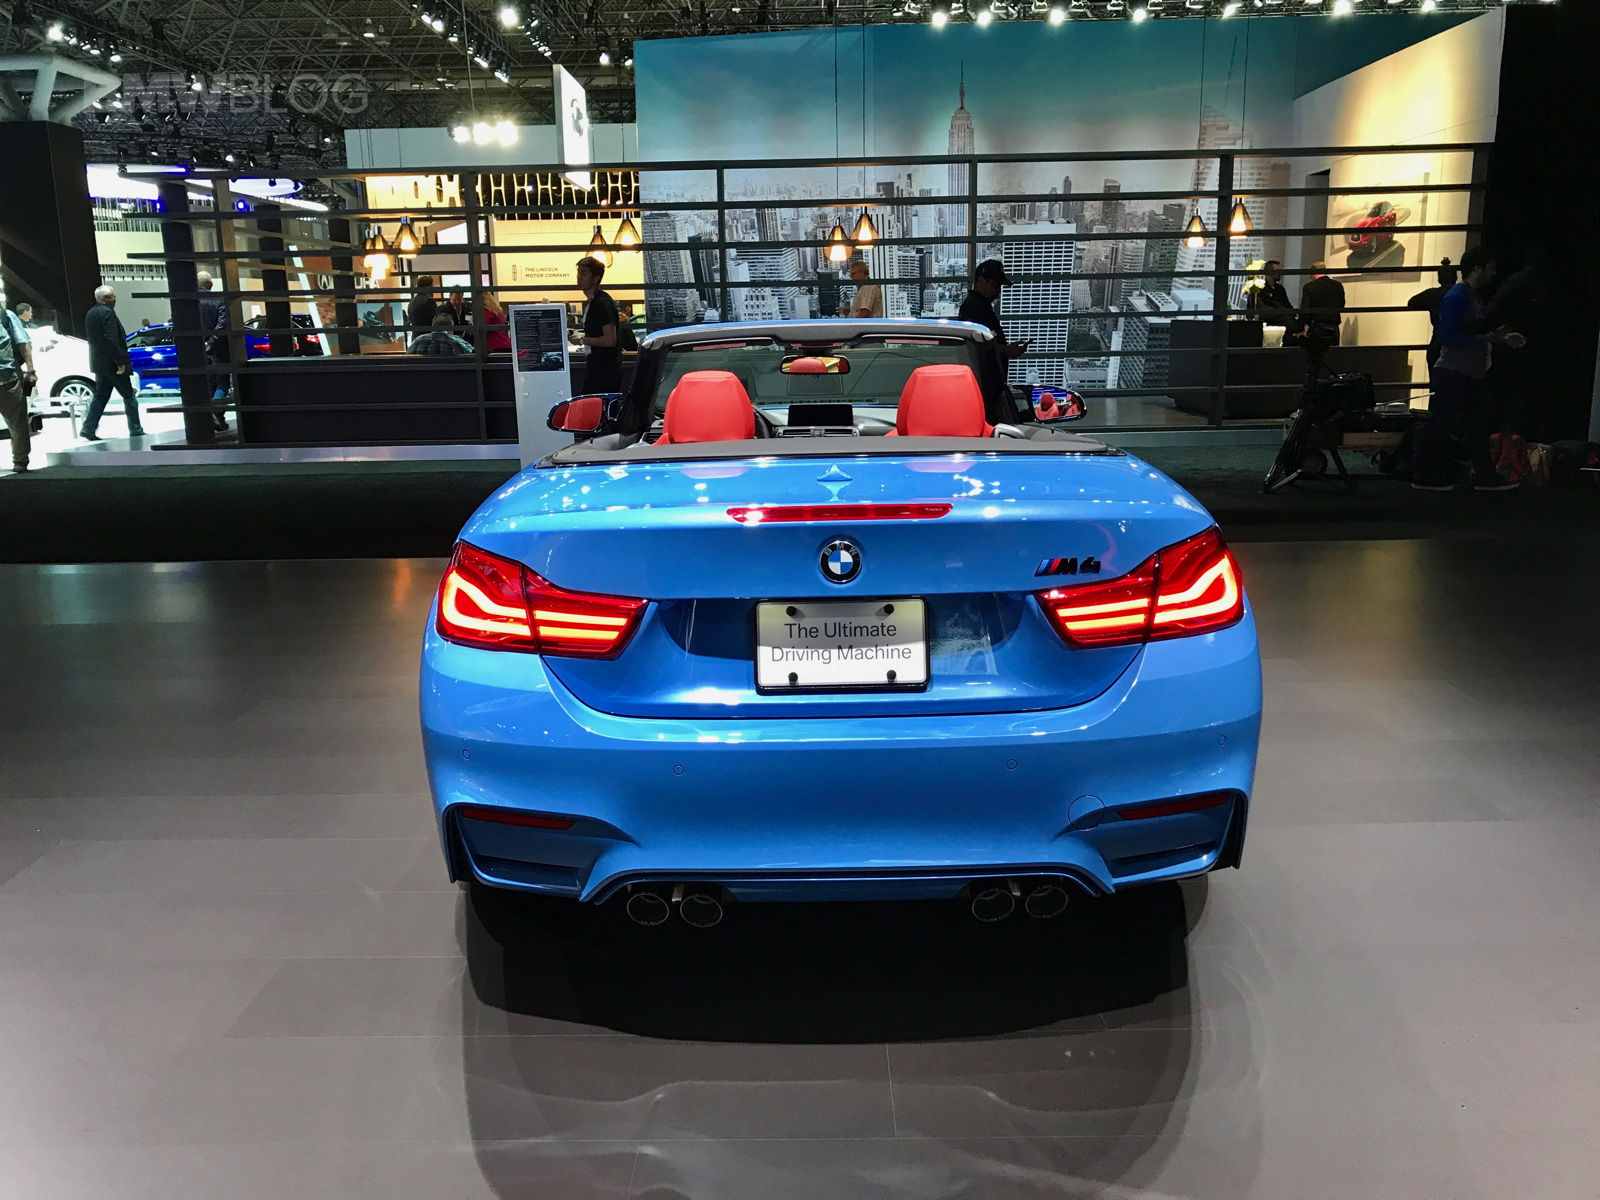 The Bmw M4 Makes 444 Hp And 406 Lb Ft Of Torque From Its Twin Turbo 3 0 I6 Has A Seven Sd Dual Clutch Gearbox Gets 60 Mph In 4 Seconds